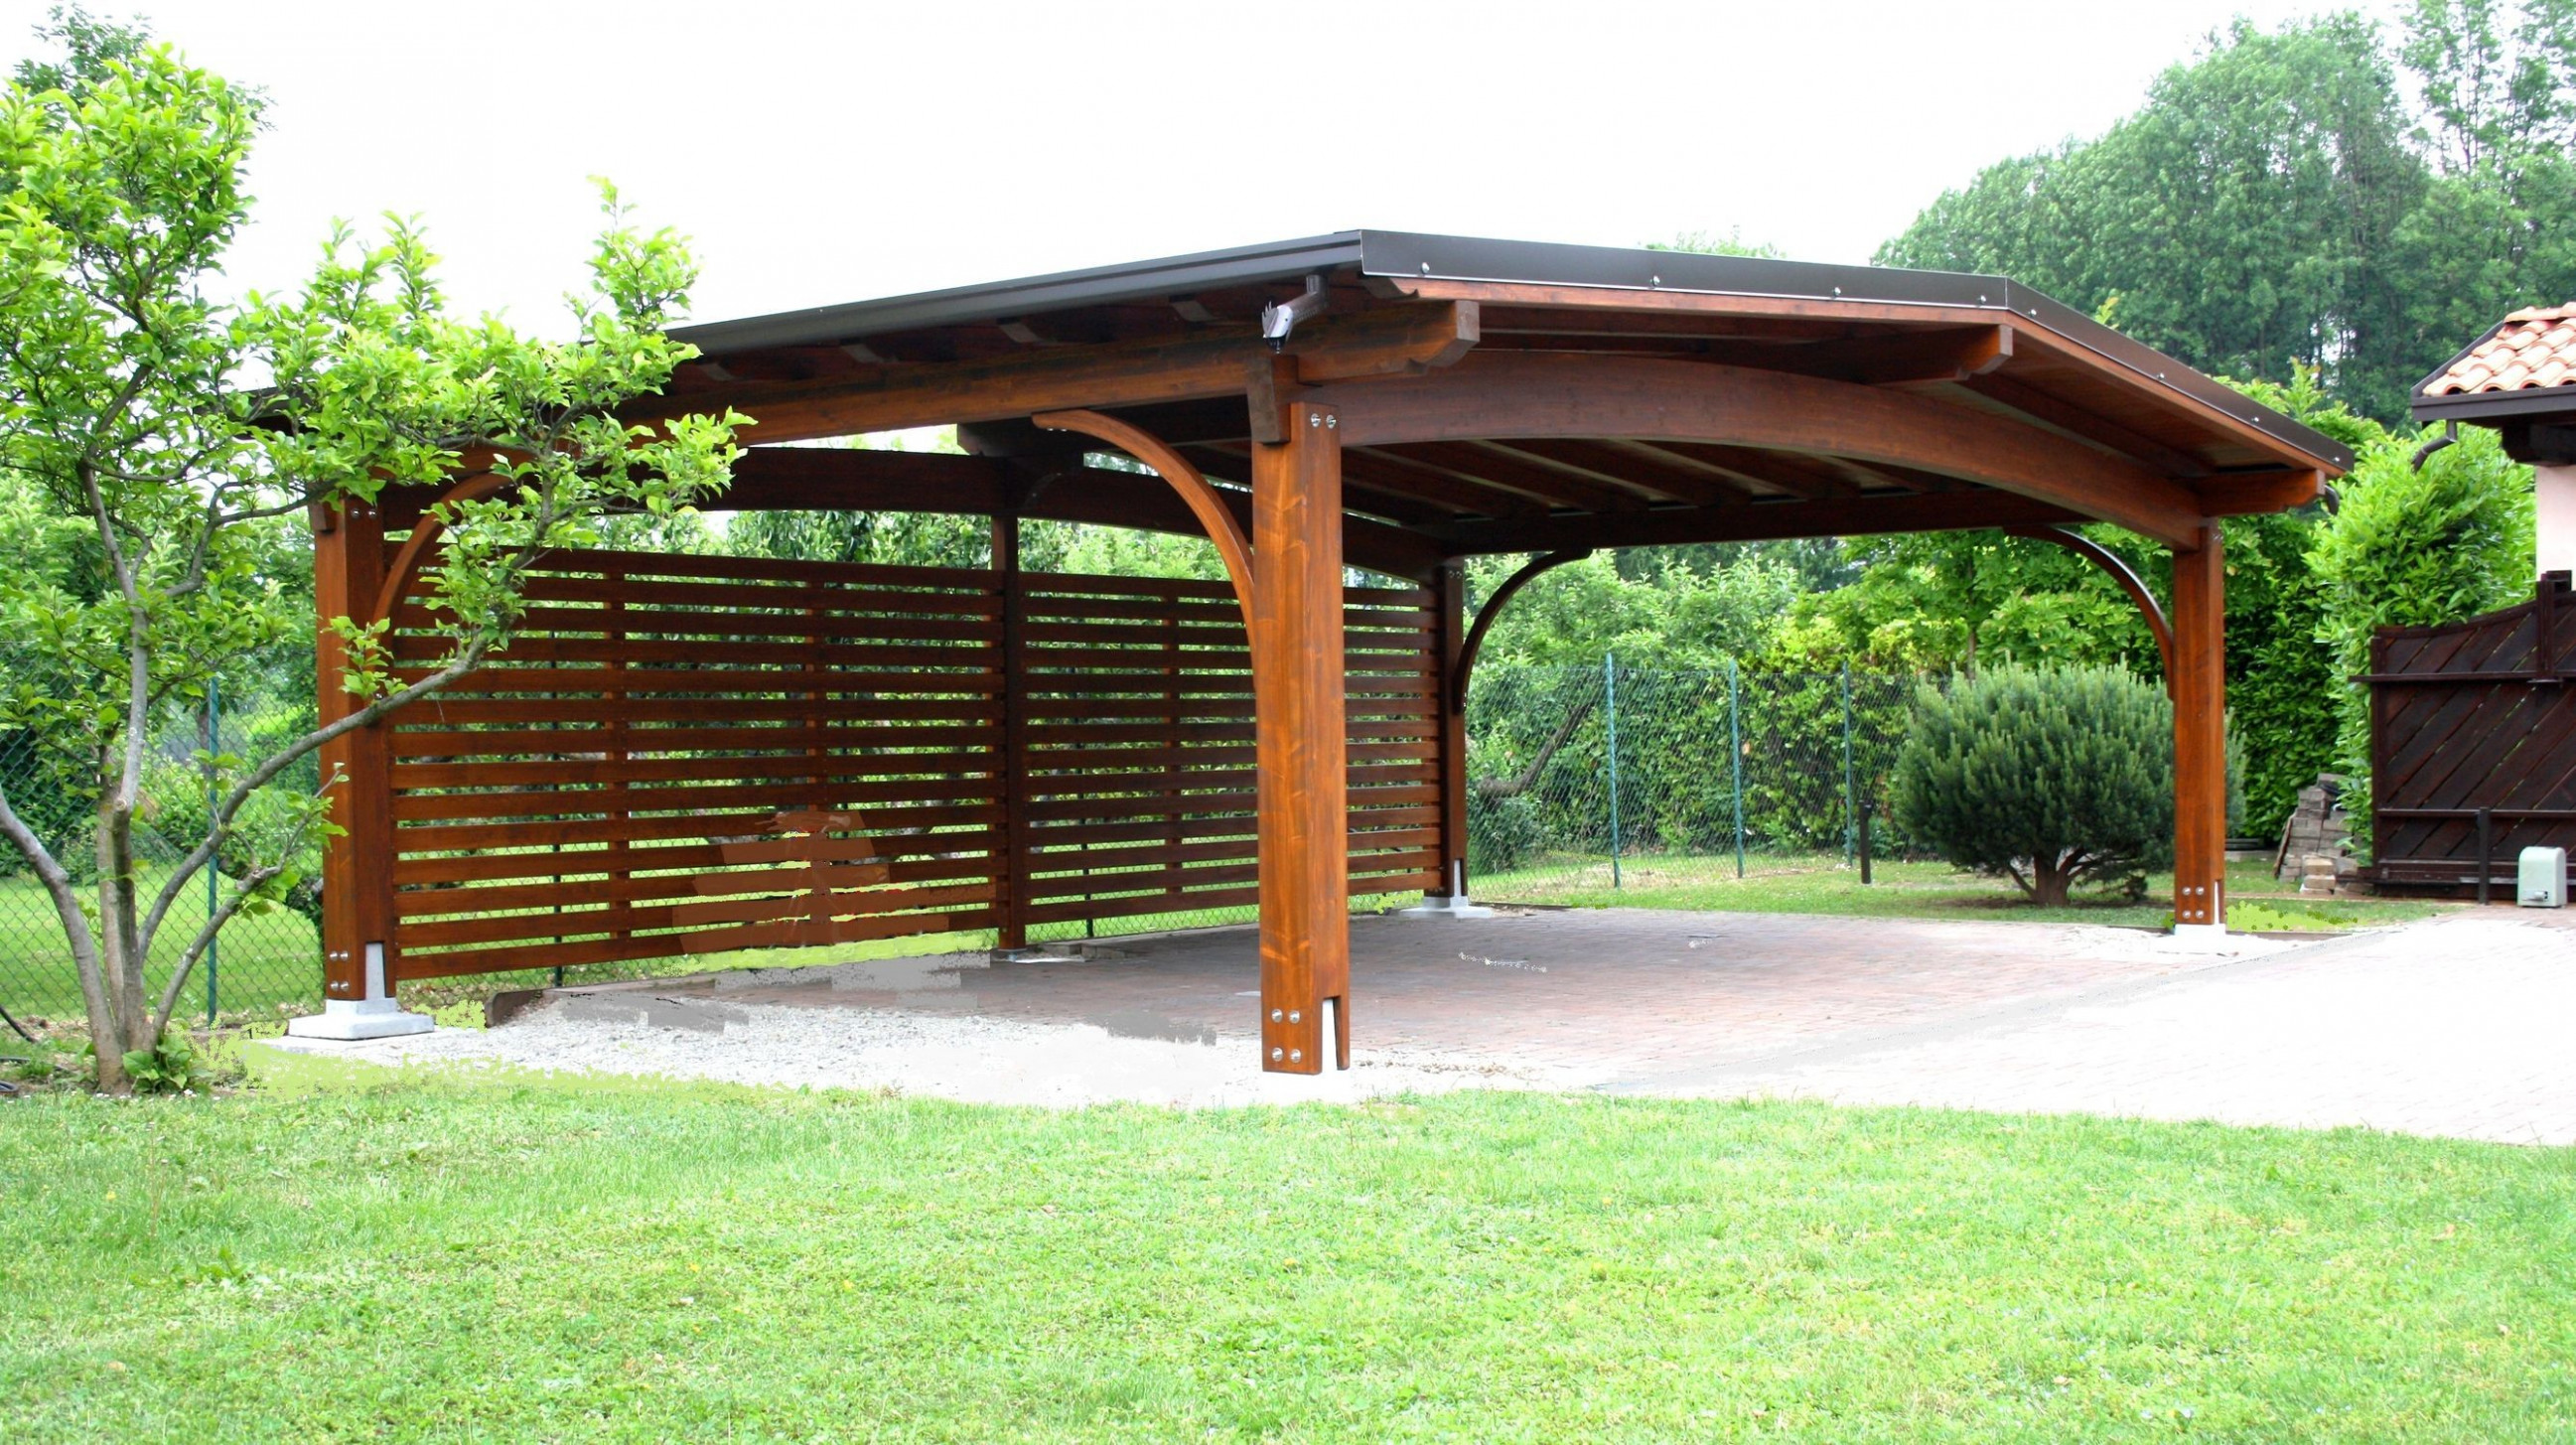 Wooden Carport ARCO Gazebodesign | Carport | Pergola ..